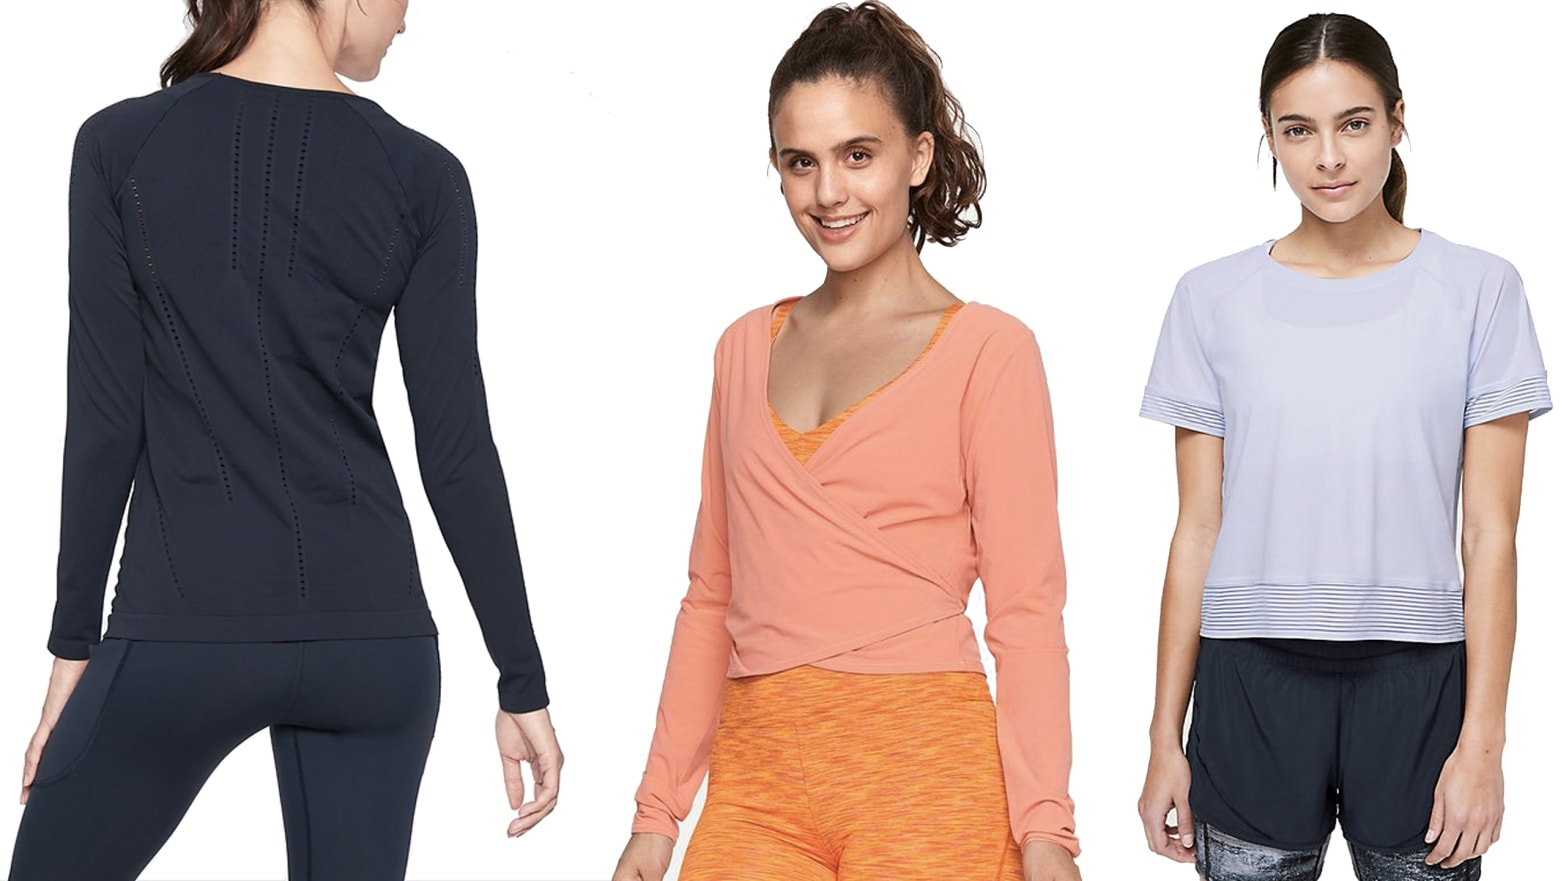 Women's Athleisure Shirts and Tops For The Office from Outdoor Voices, Sweaty Betty, ADAY and More